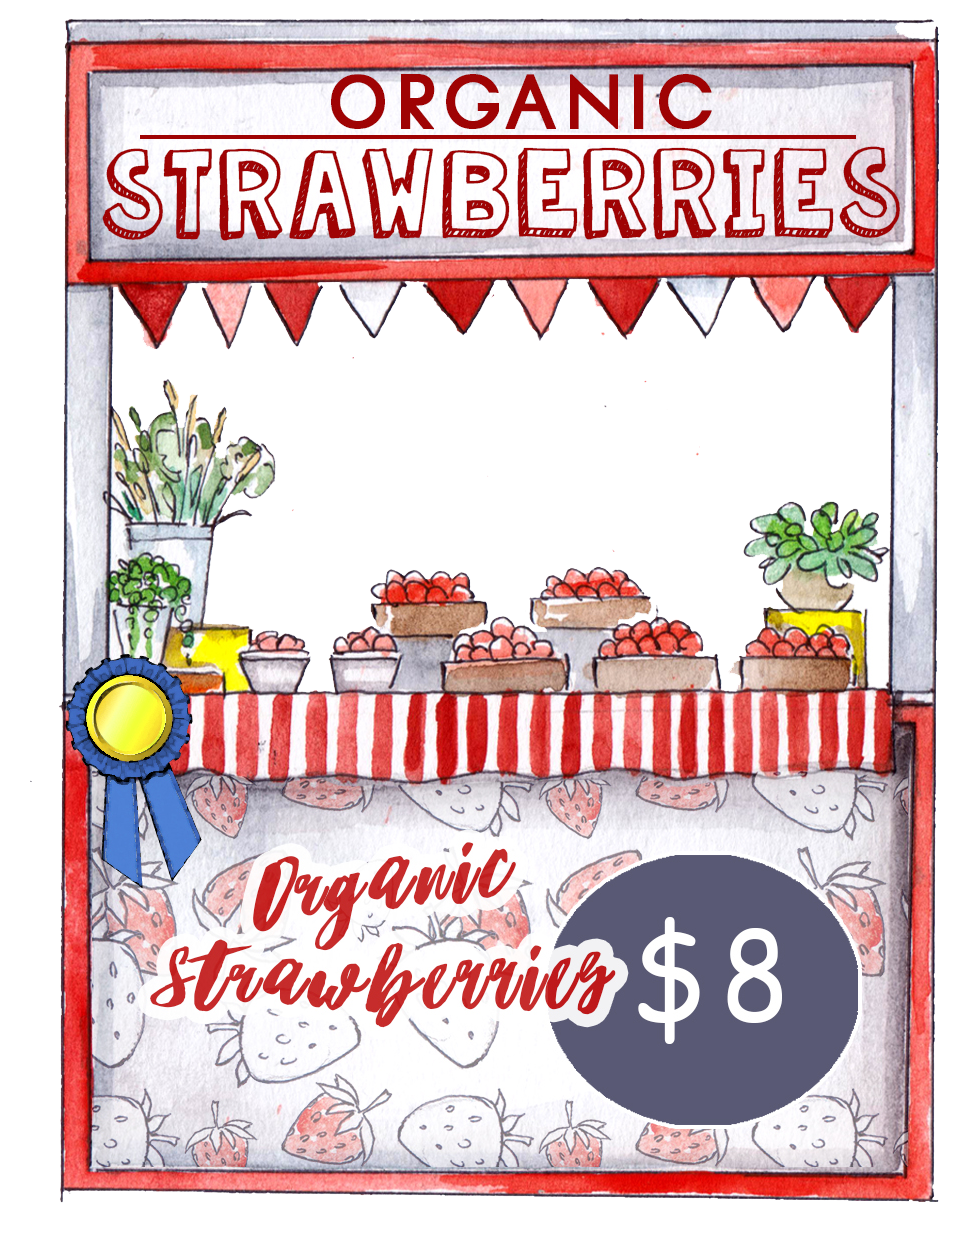 Blog Image Selling Strawberries Stand 3